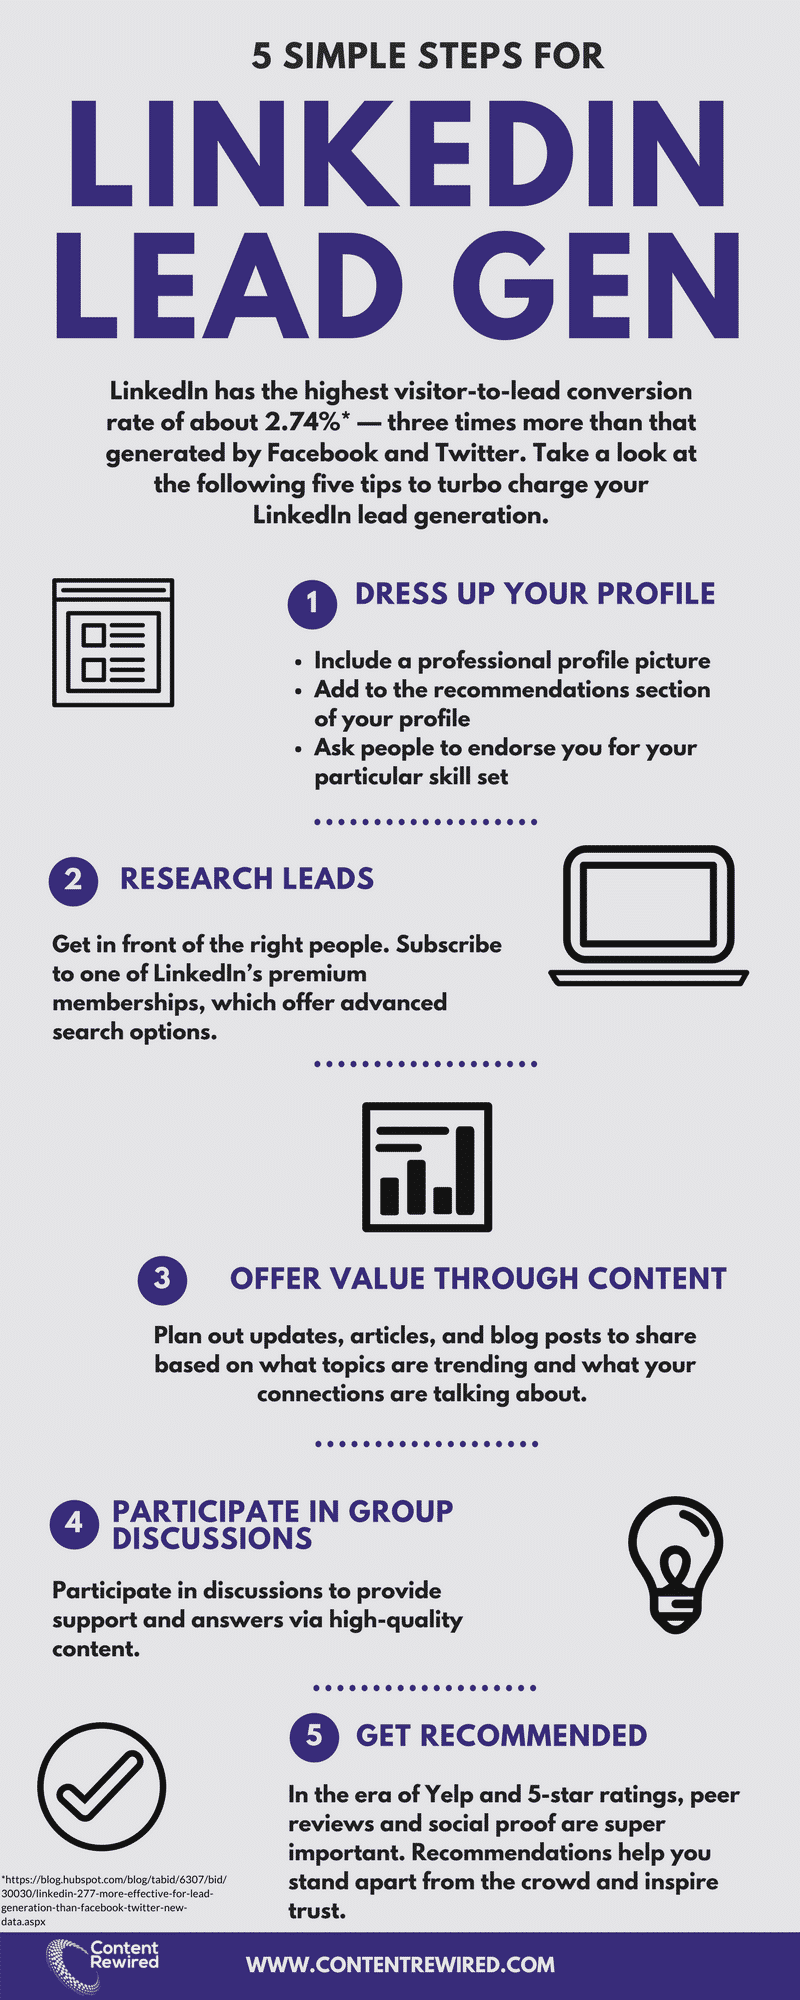 To learn more about using LinkedIn for lead generation, check out this great infographic.